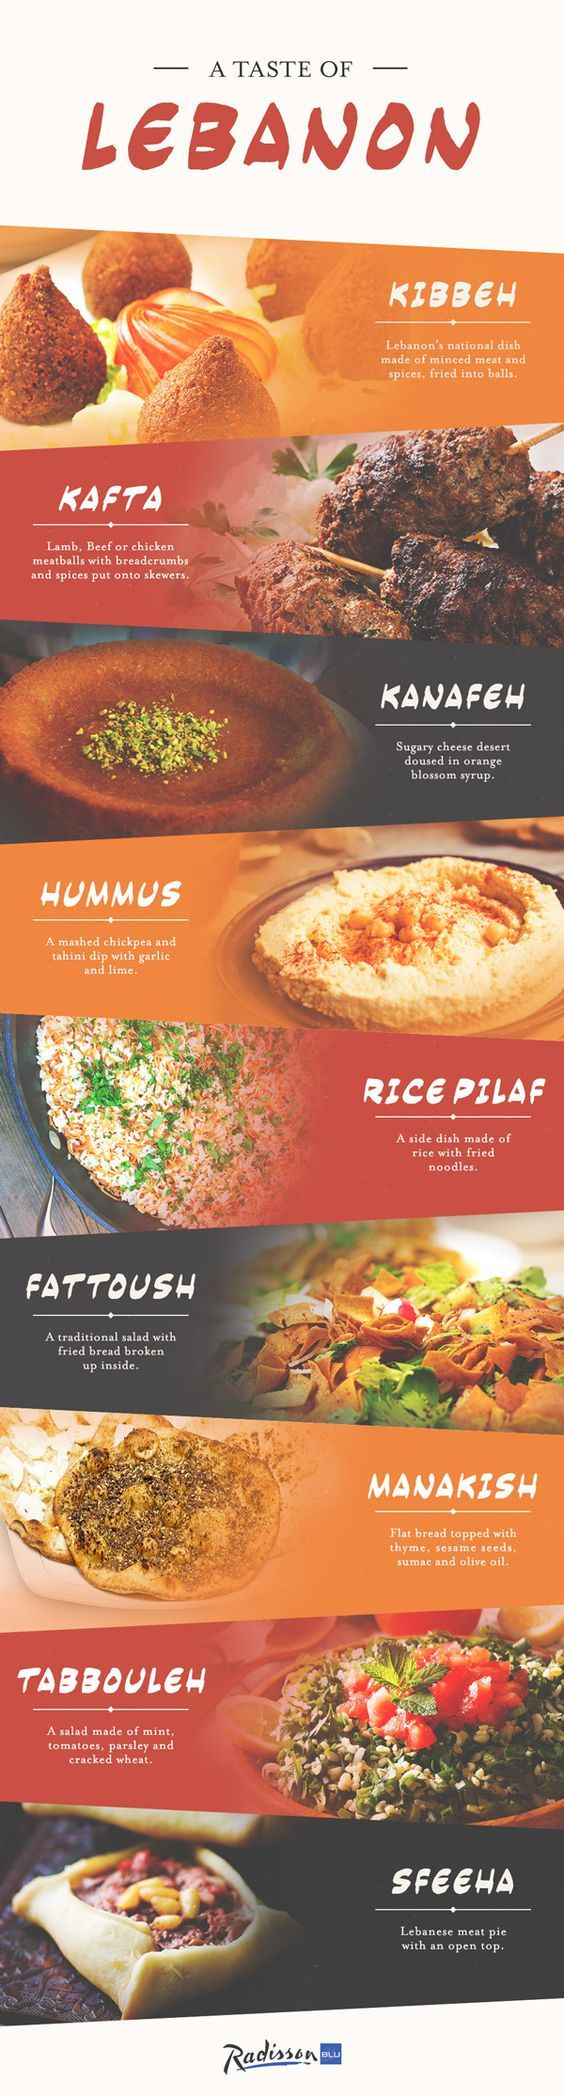 9 Ridiculously Good Lebanese Foods You Need to Try | Food